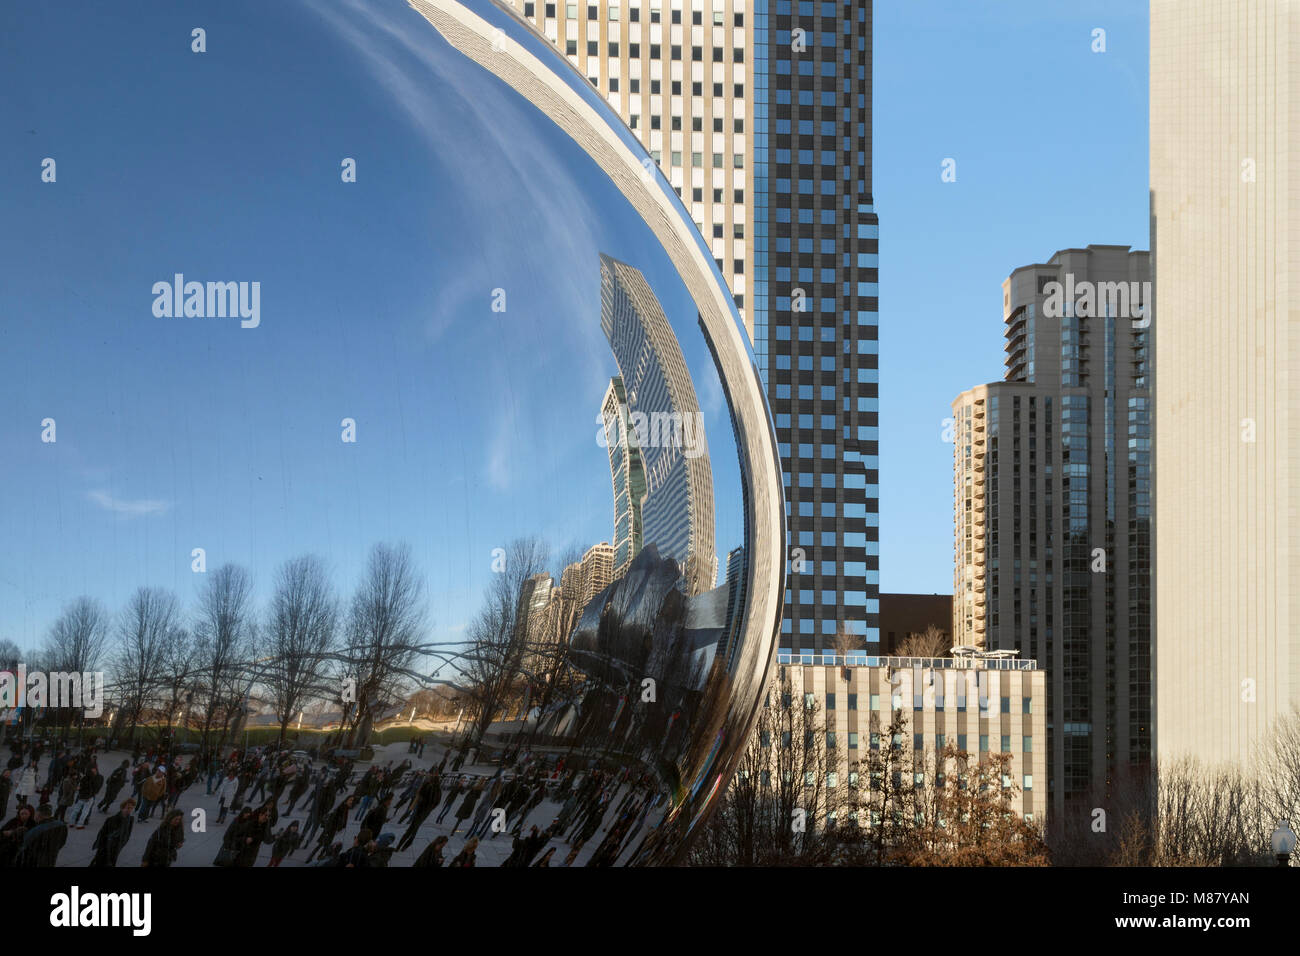 Various modernistic architectural and aesthetic styles are appreciated at Millenium Park in Chicago. - Stock Image